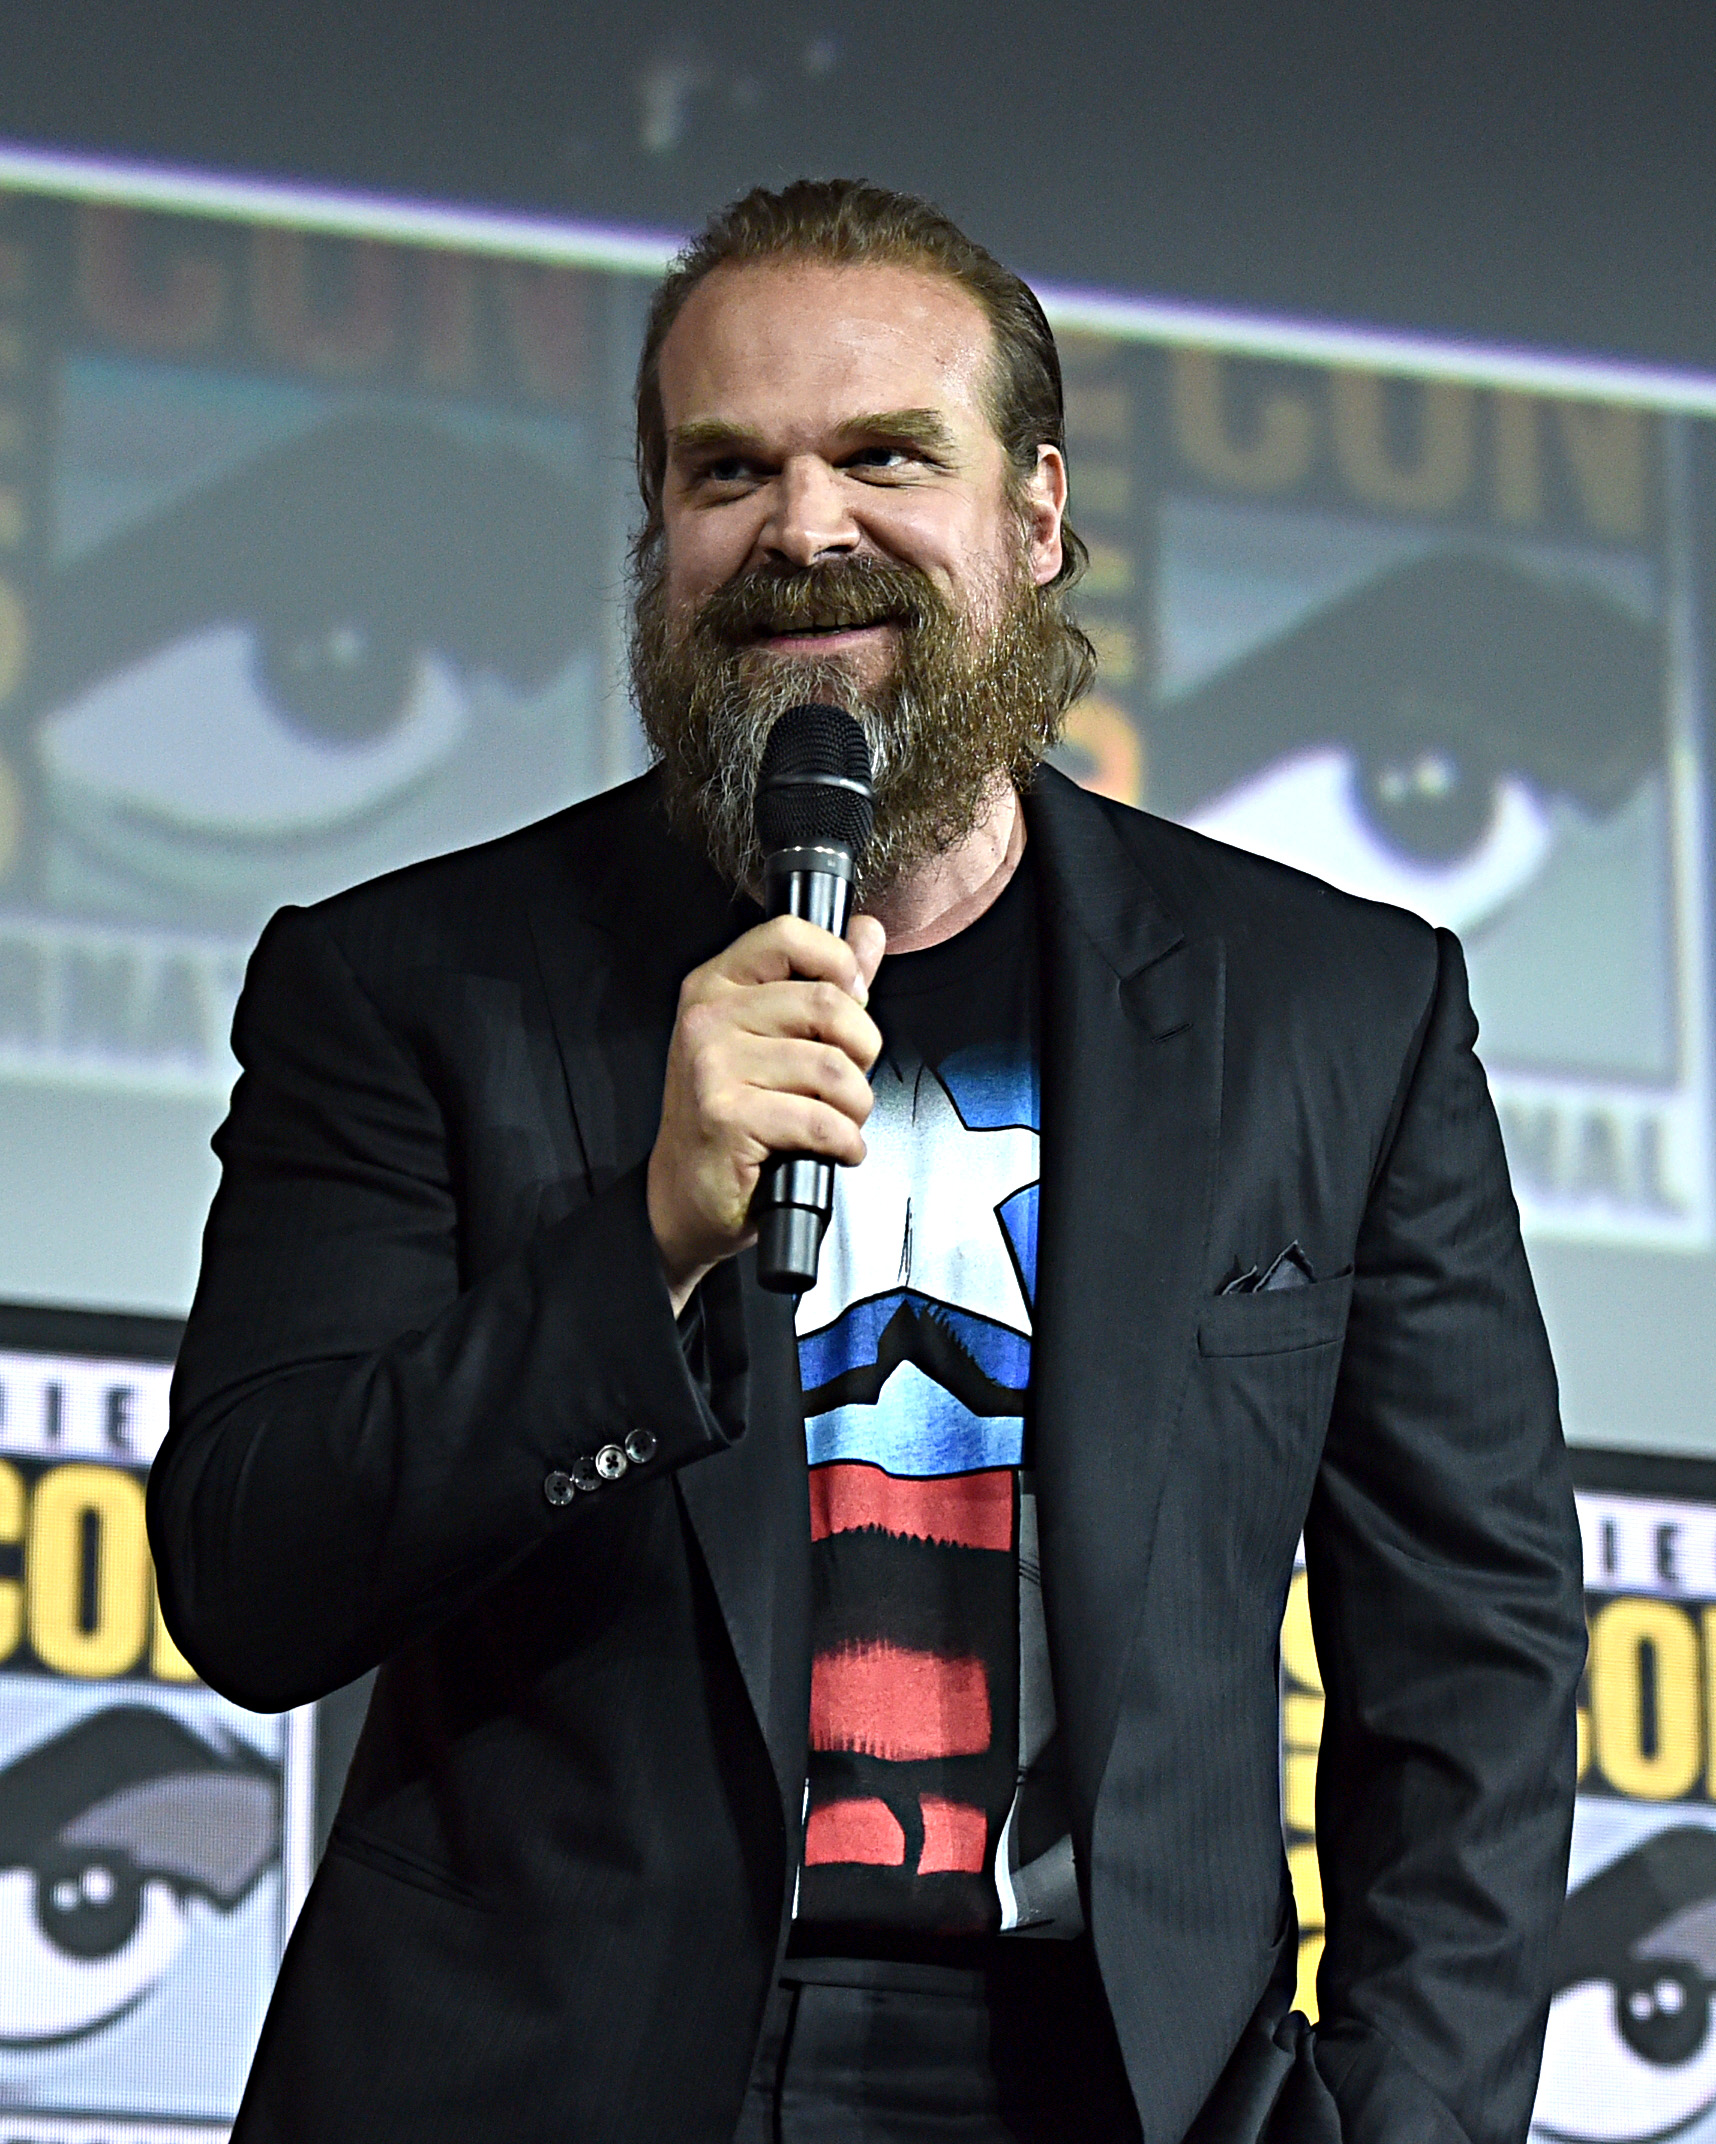 David Harbour at an event for Black Widow (2021)